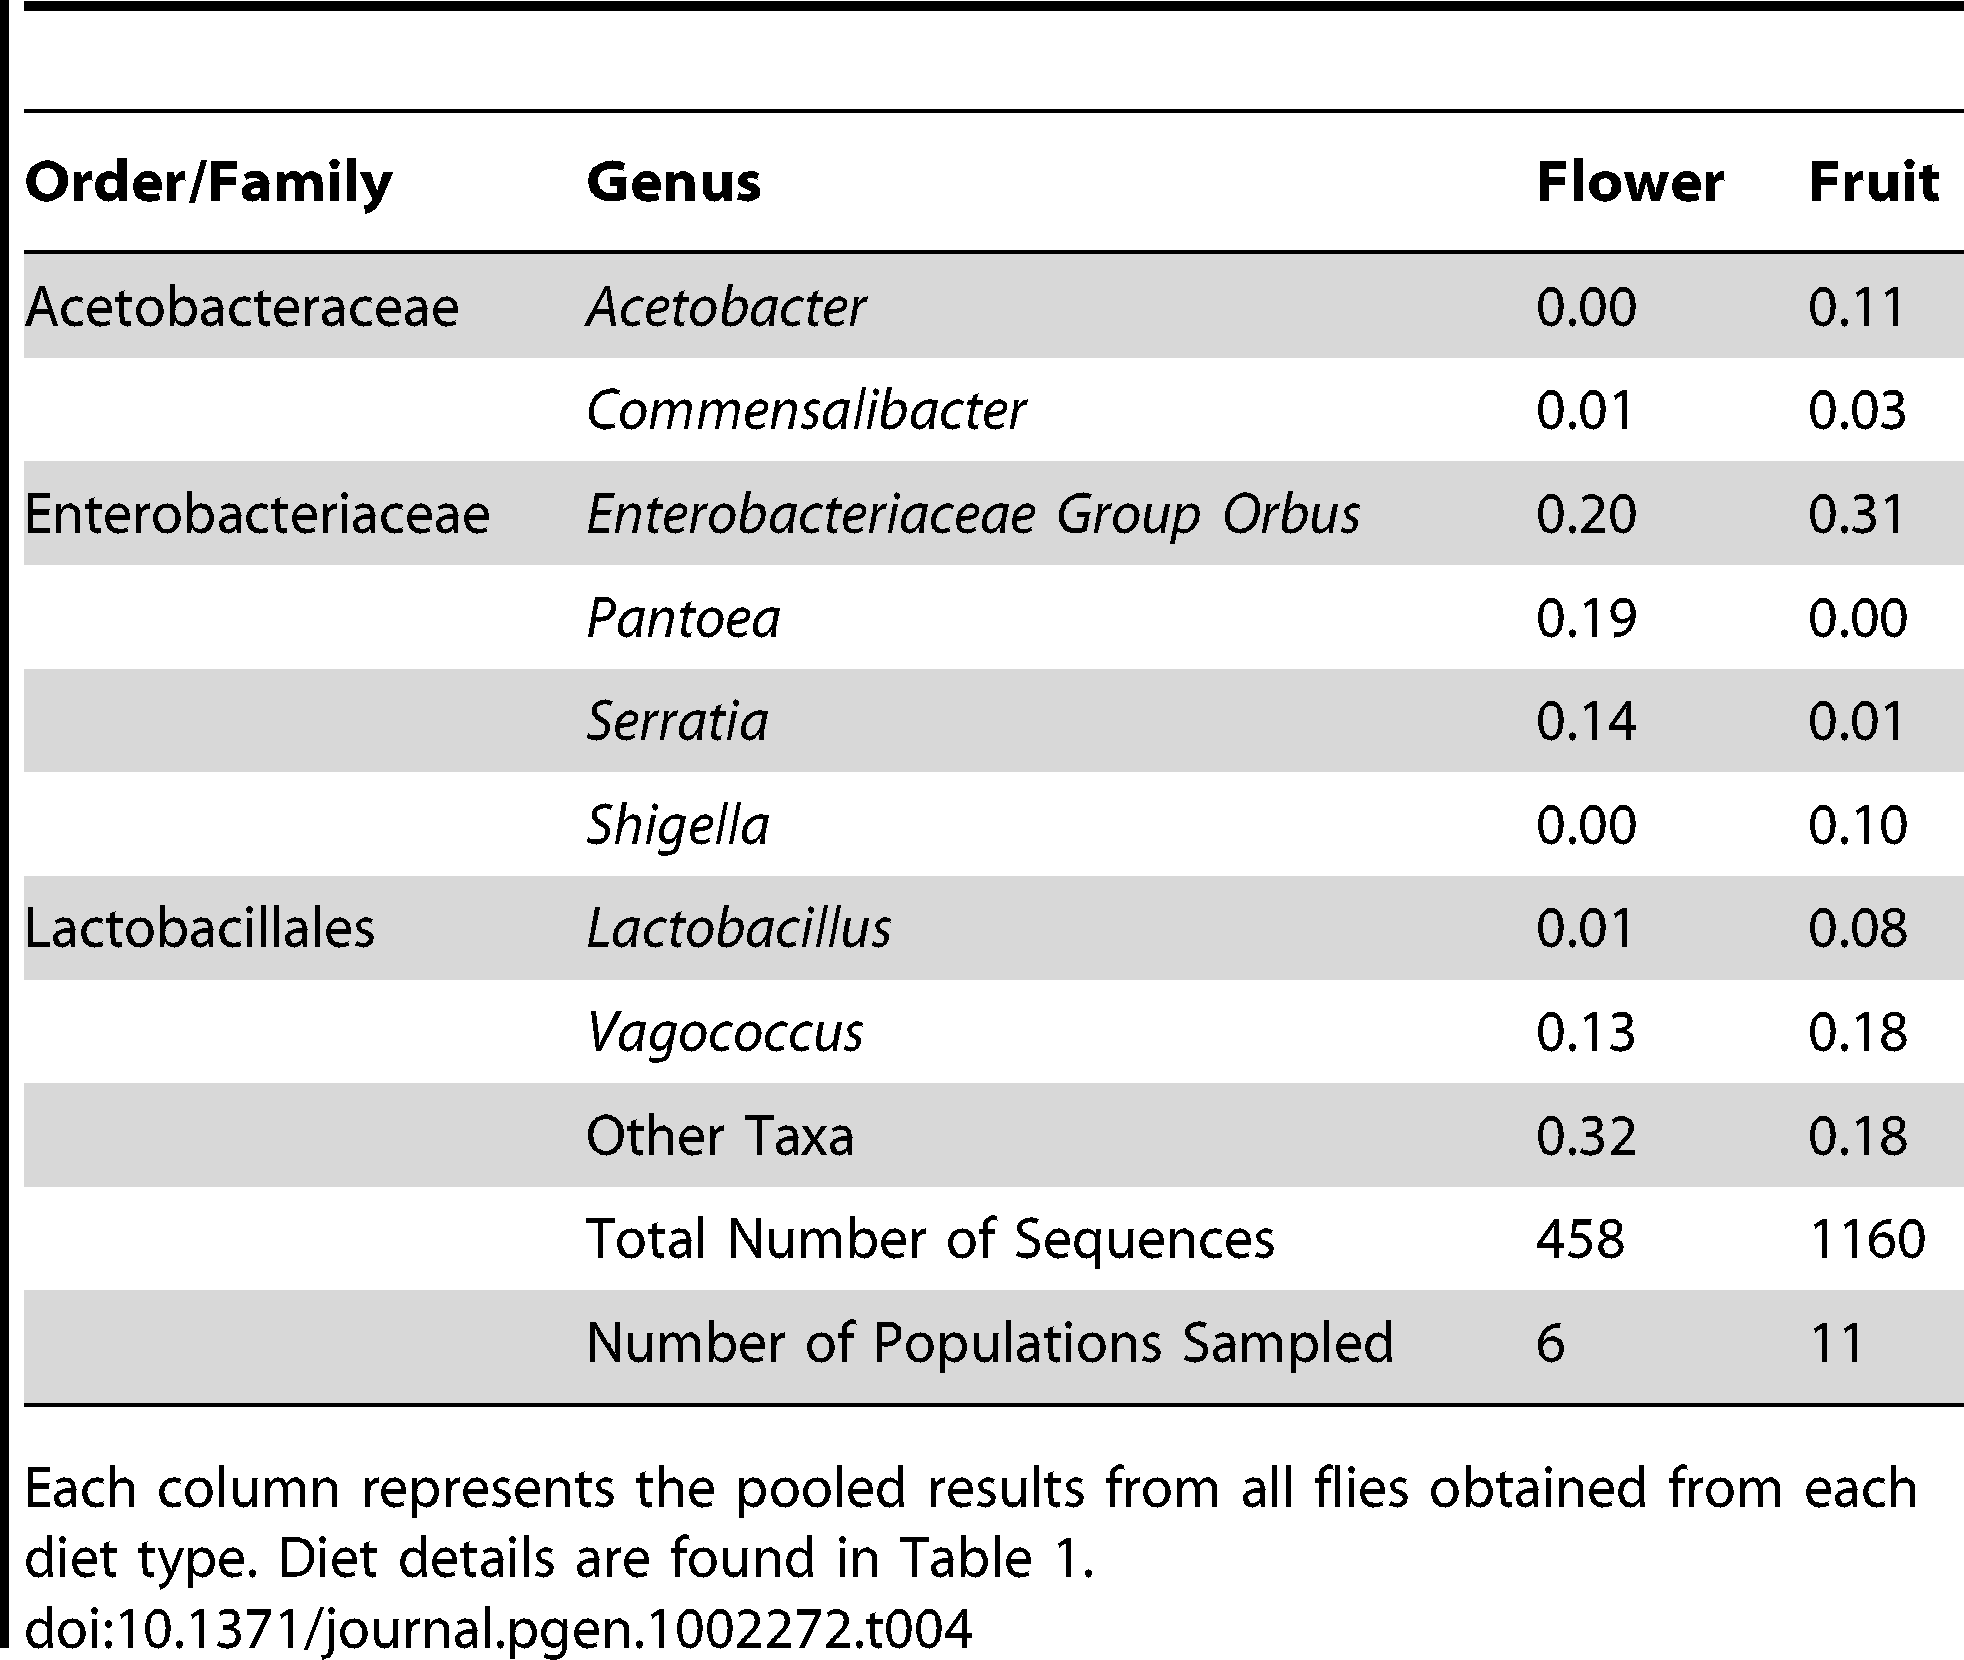 Taxonomic differences between the bacterial microbiomes of flower and fruit feeding <i>Drosophila</i>.